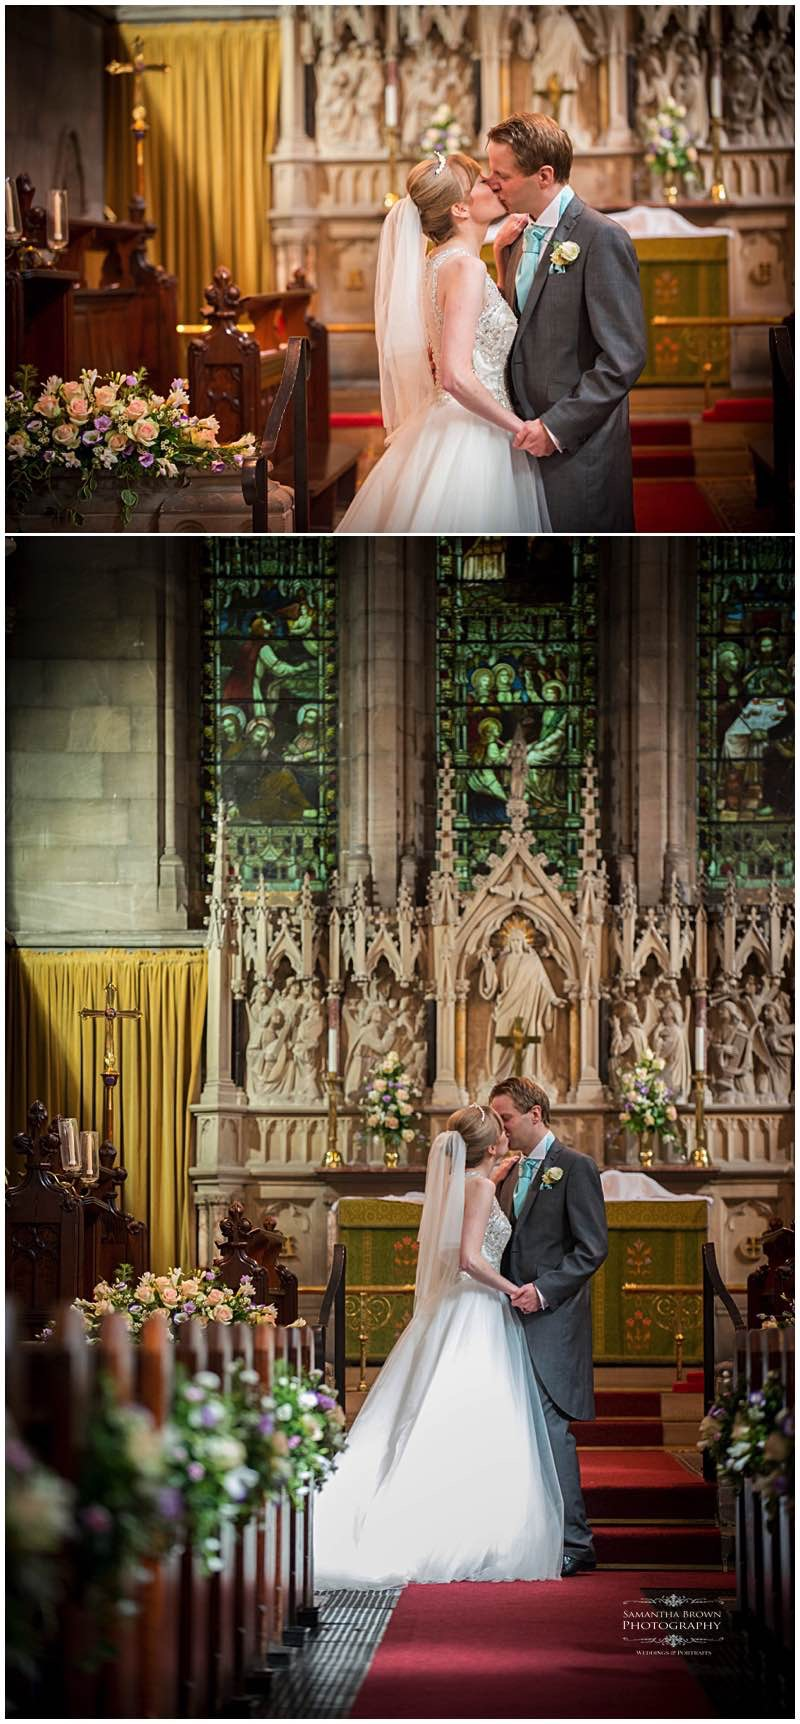 Heskin Hall Wedding by Samantha Brown_0145a